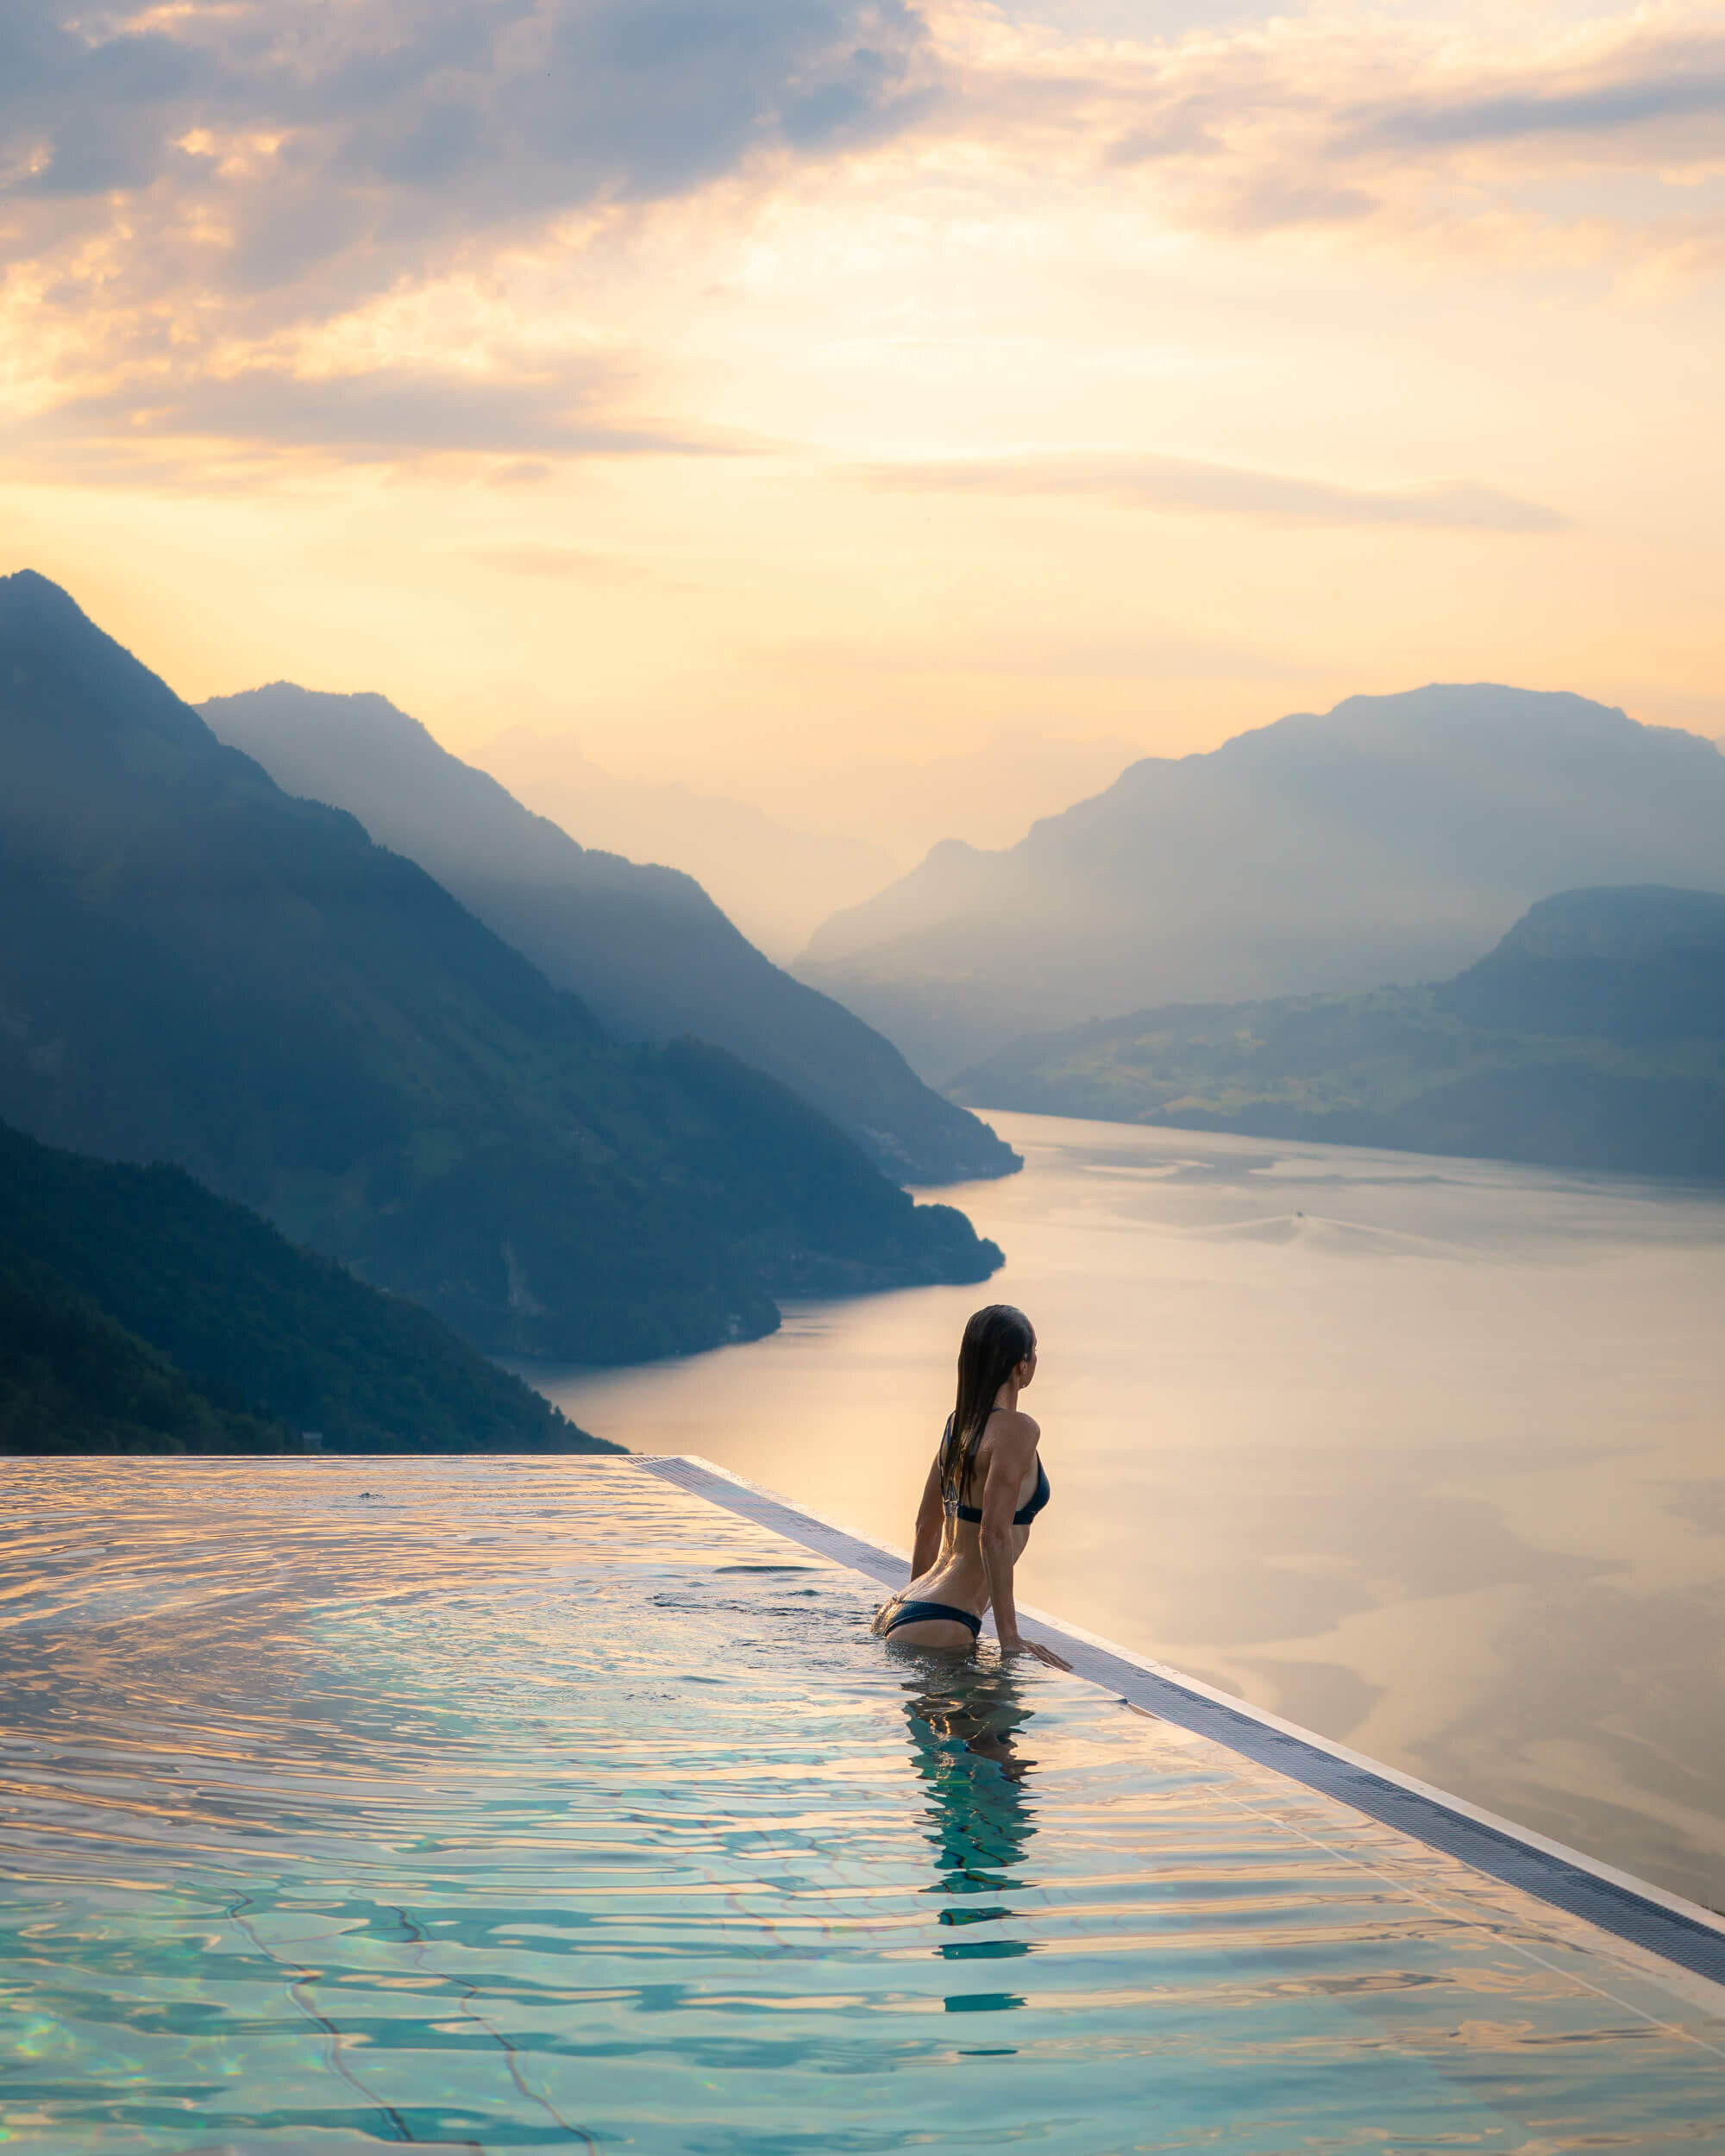 Watching the sun come up over the mountains from the pool at Villa Honegg in Switzerland.